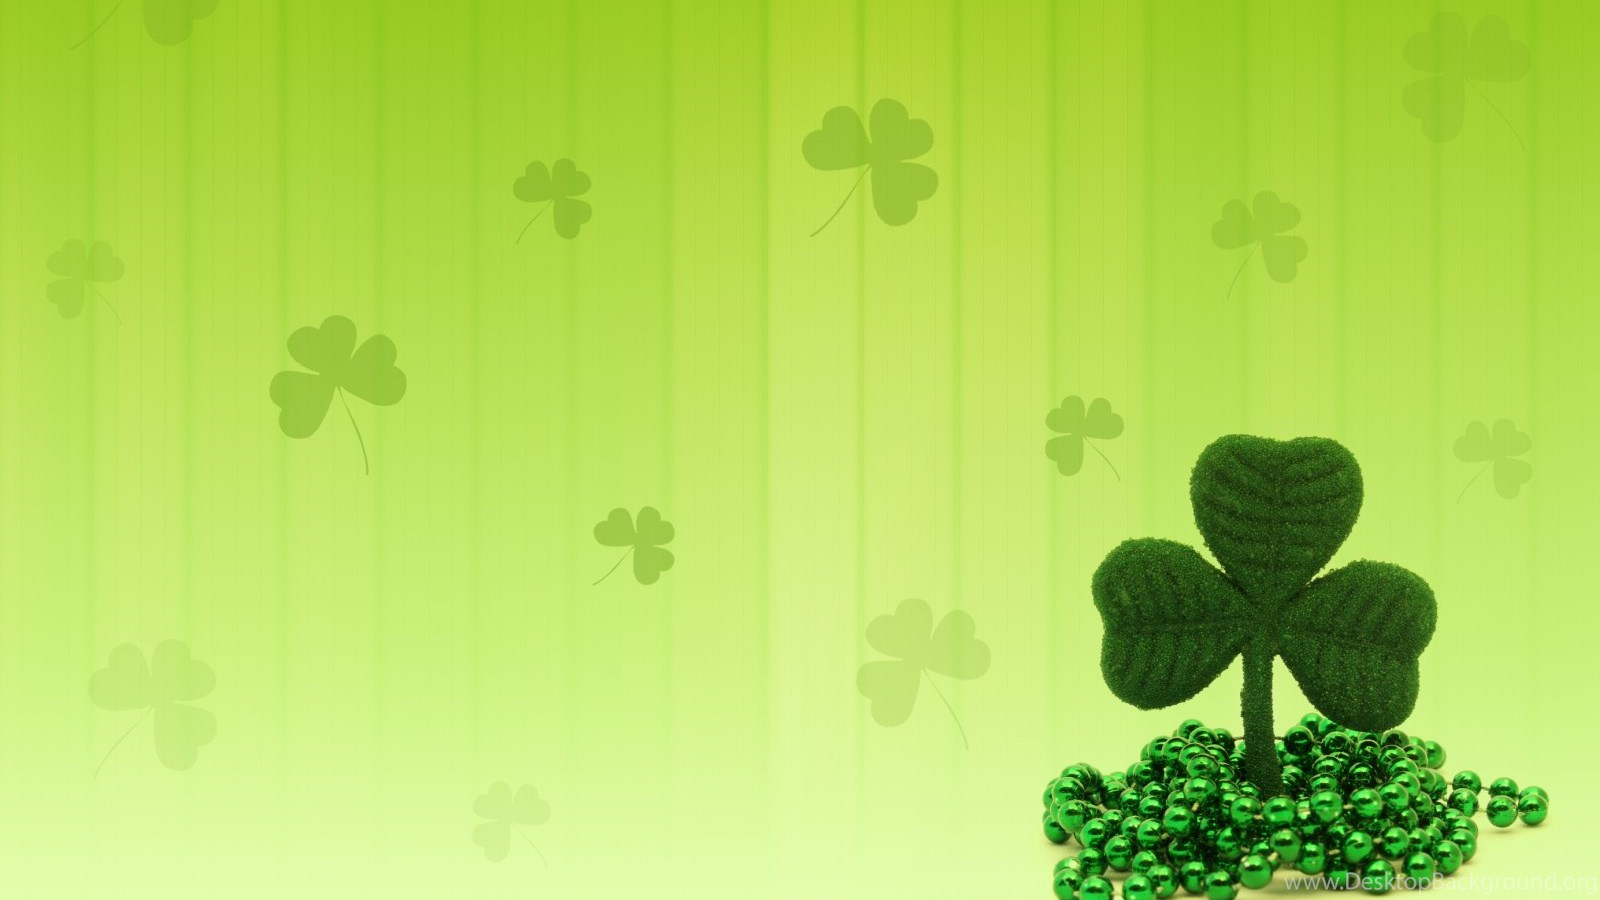 St Patricks Day Wallpaper Iphone St Patrick S Day Desktop Wallpaper Backgrounds Screensaver